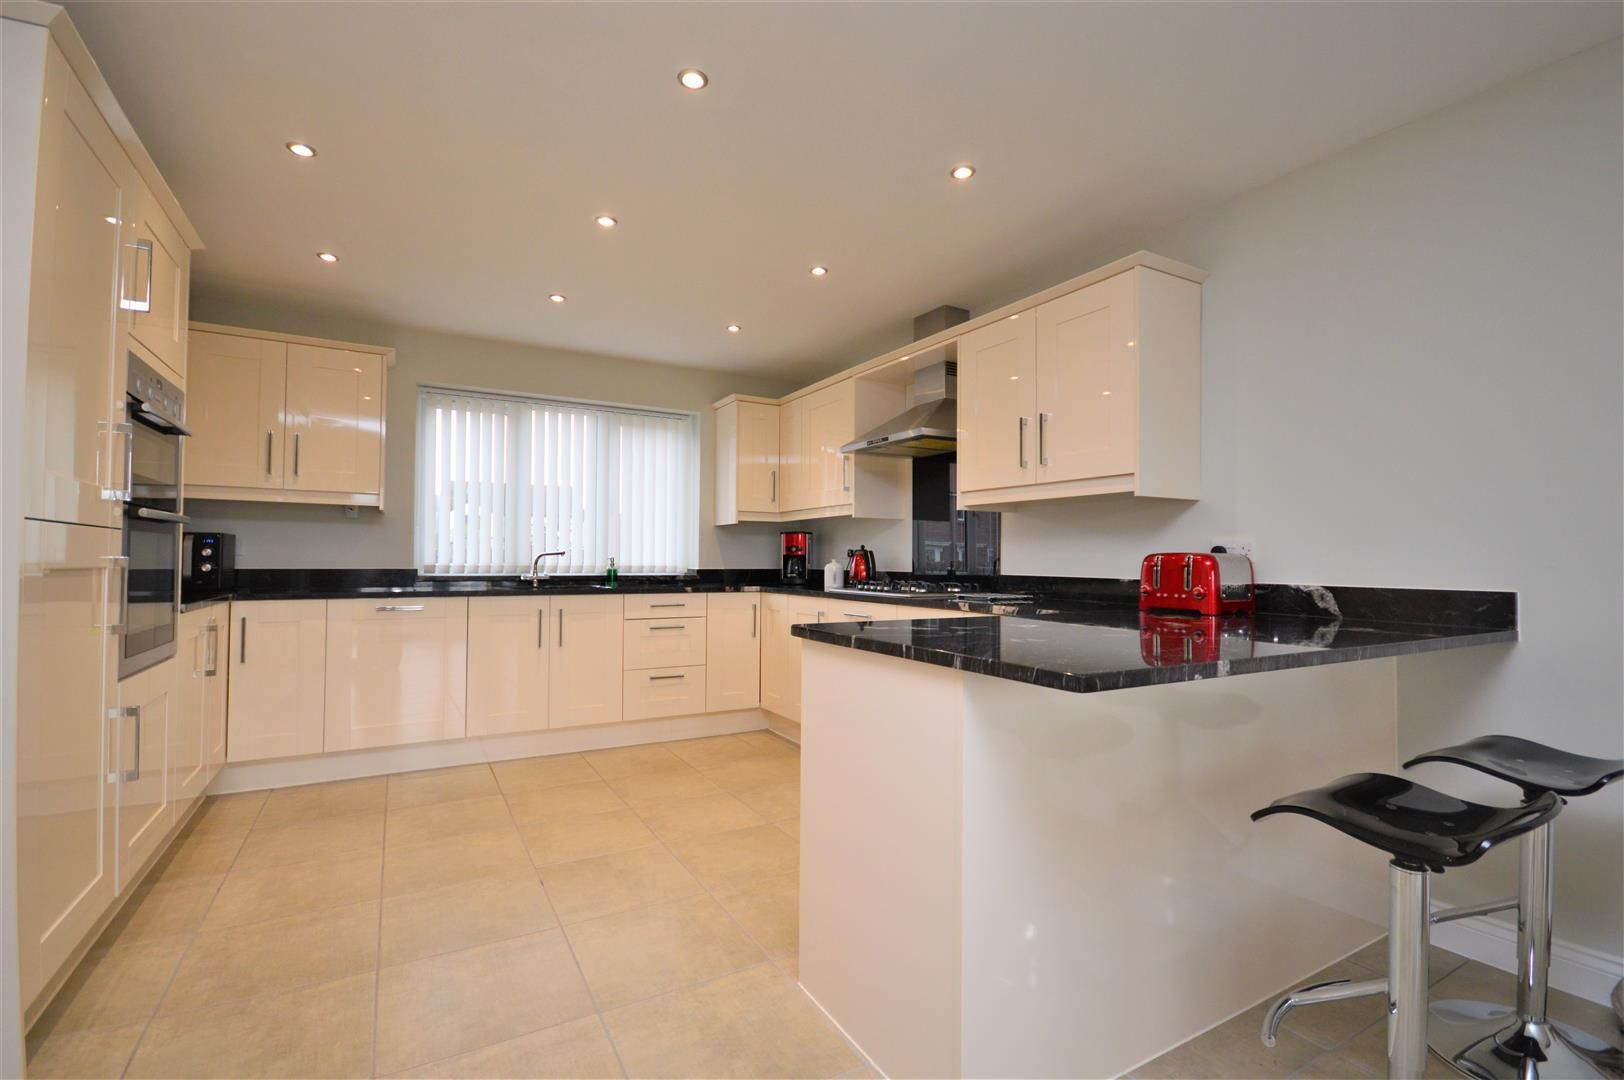 4 bed detached for sale in Wellington 9